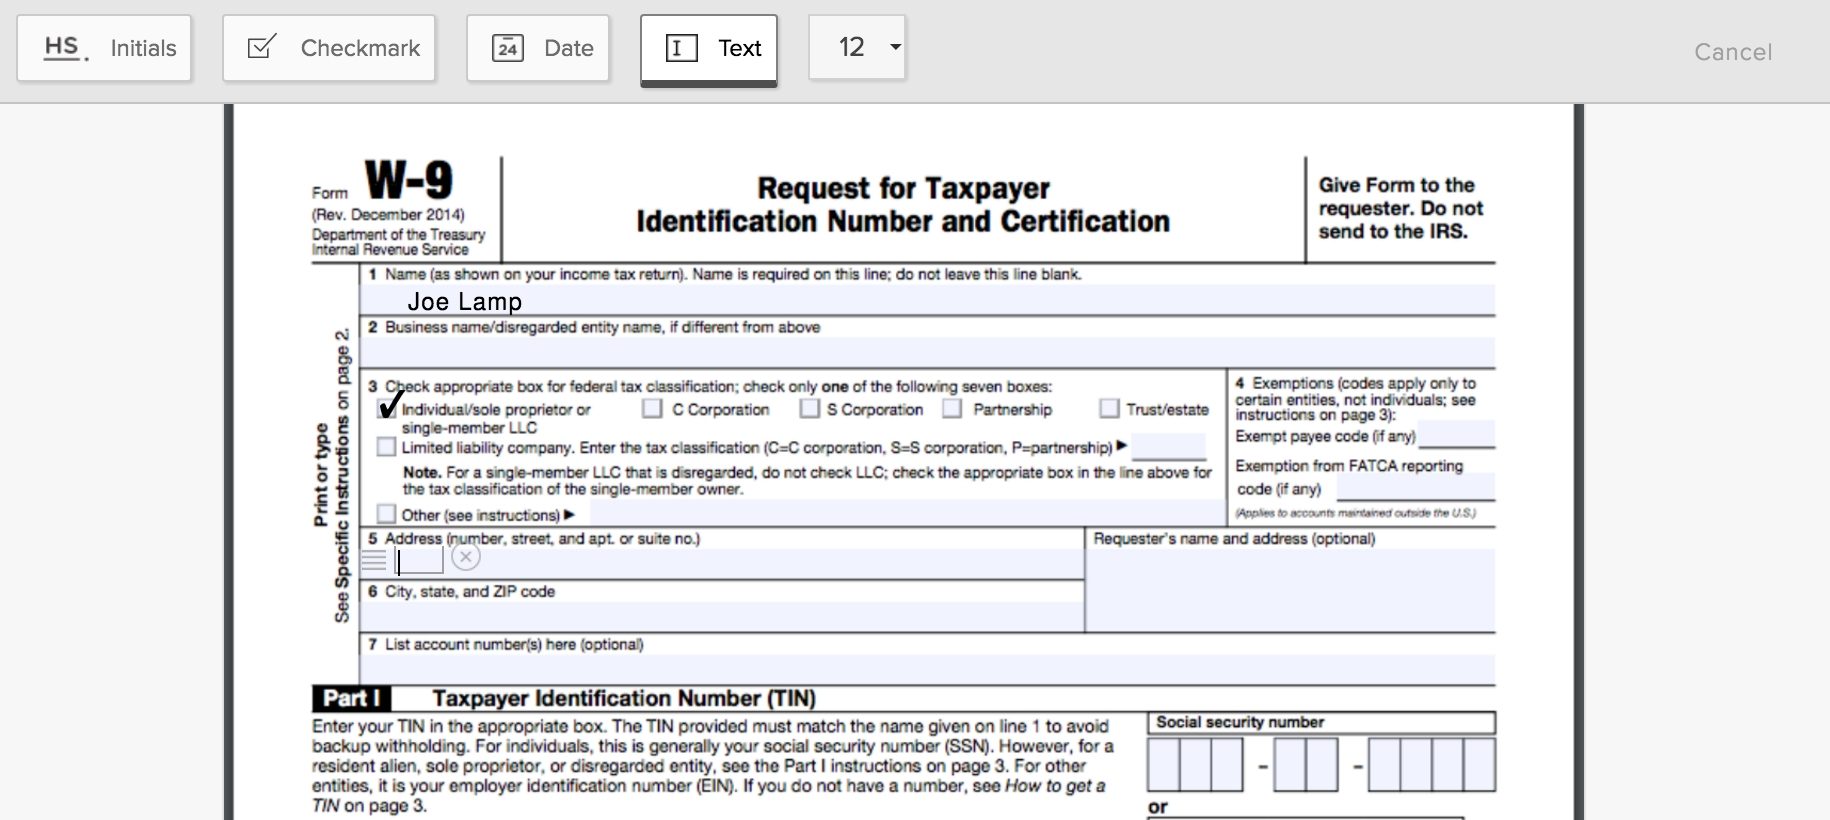 How To Fill Out A W-9 Form Online - Hellosign Blog-2020 W-9 Blank Pdf